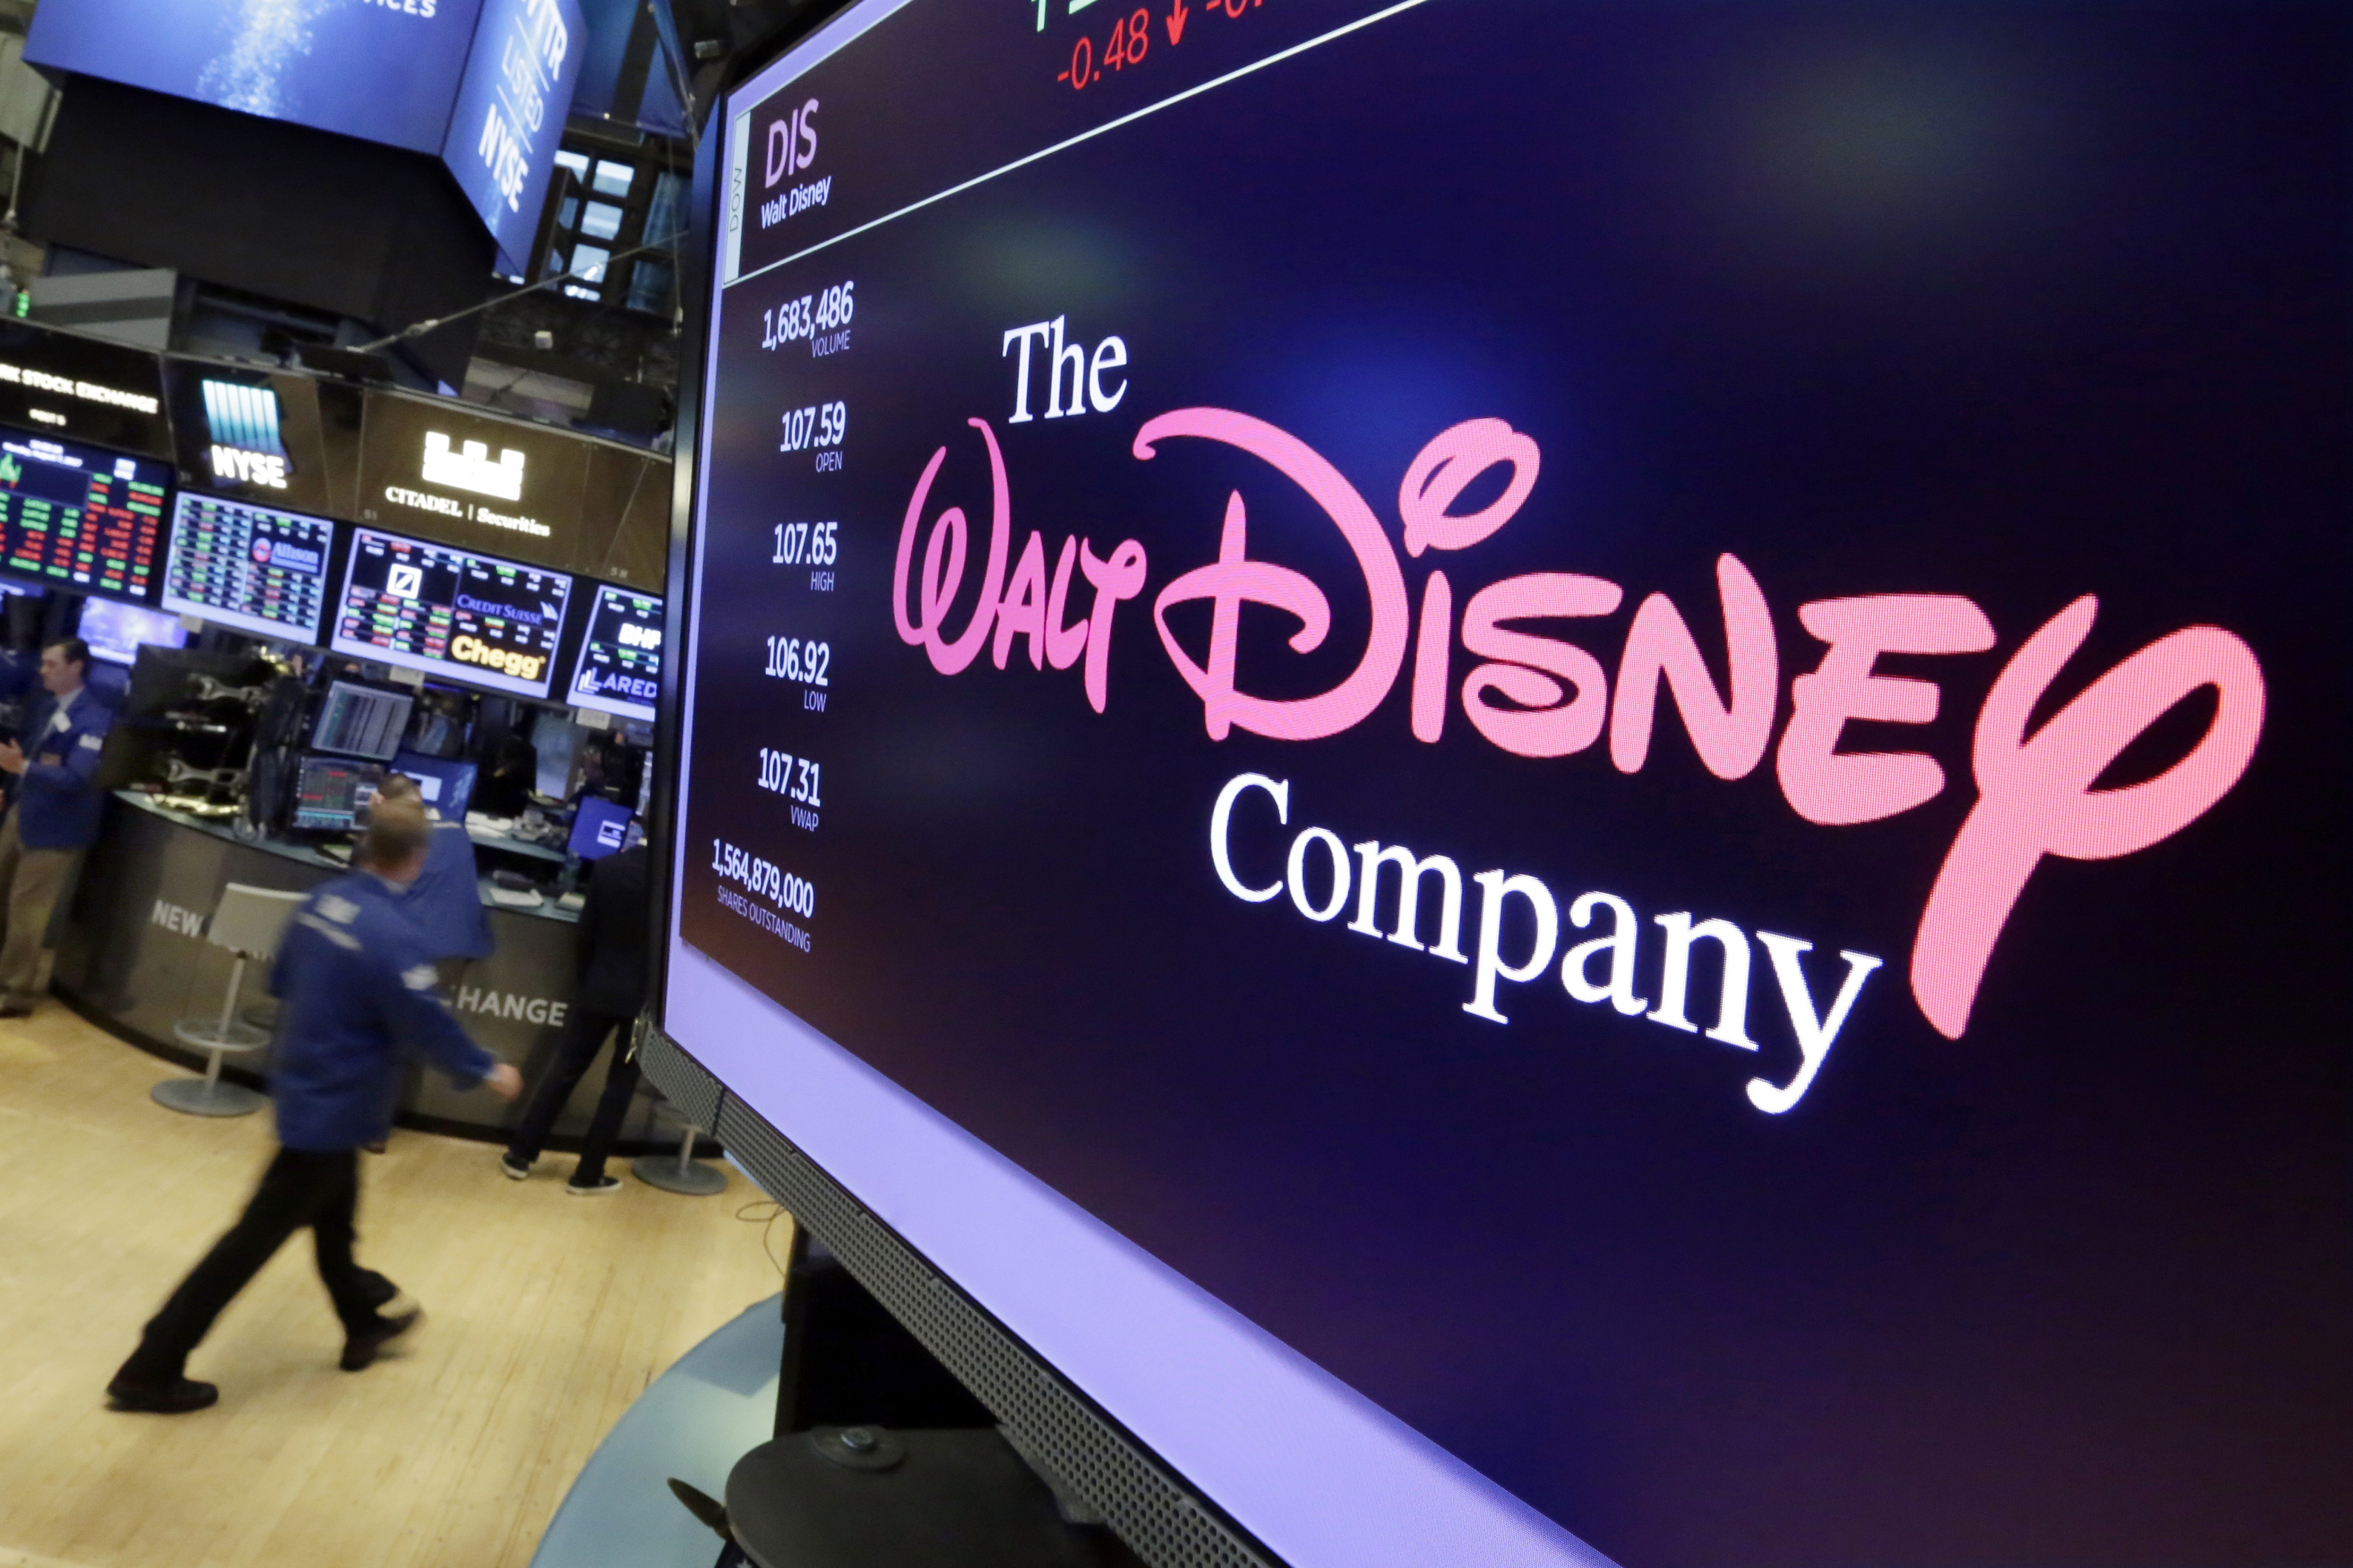 """In this Aug. 8, 2017, file photo, The Walt Disney Co. logo appears on a screen above the floor of the New York Stock Exchange. The Walt Disney Co. has """"dramatically"""" slashed its advertising budget on Facebook and Facebook-owned Instagram, according to a report in the Wall Street Journal."""